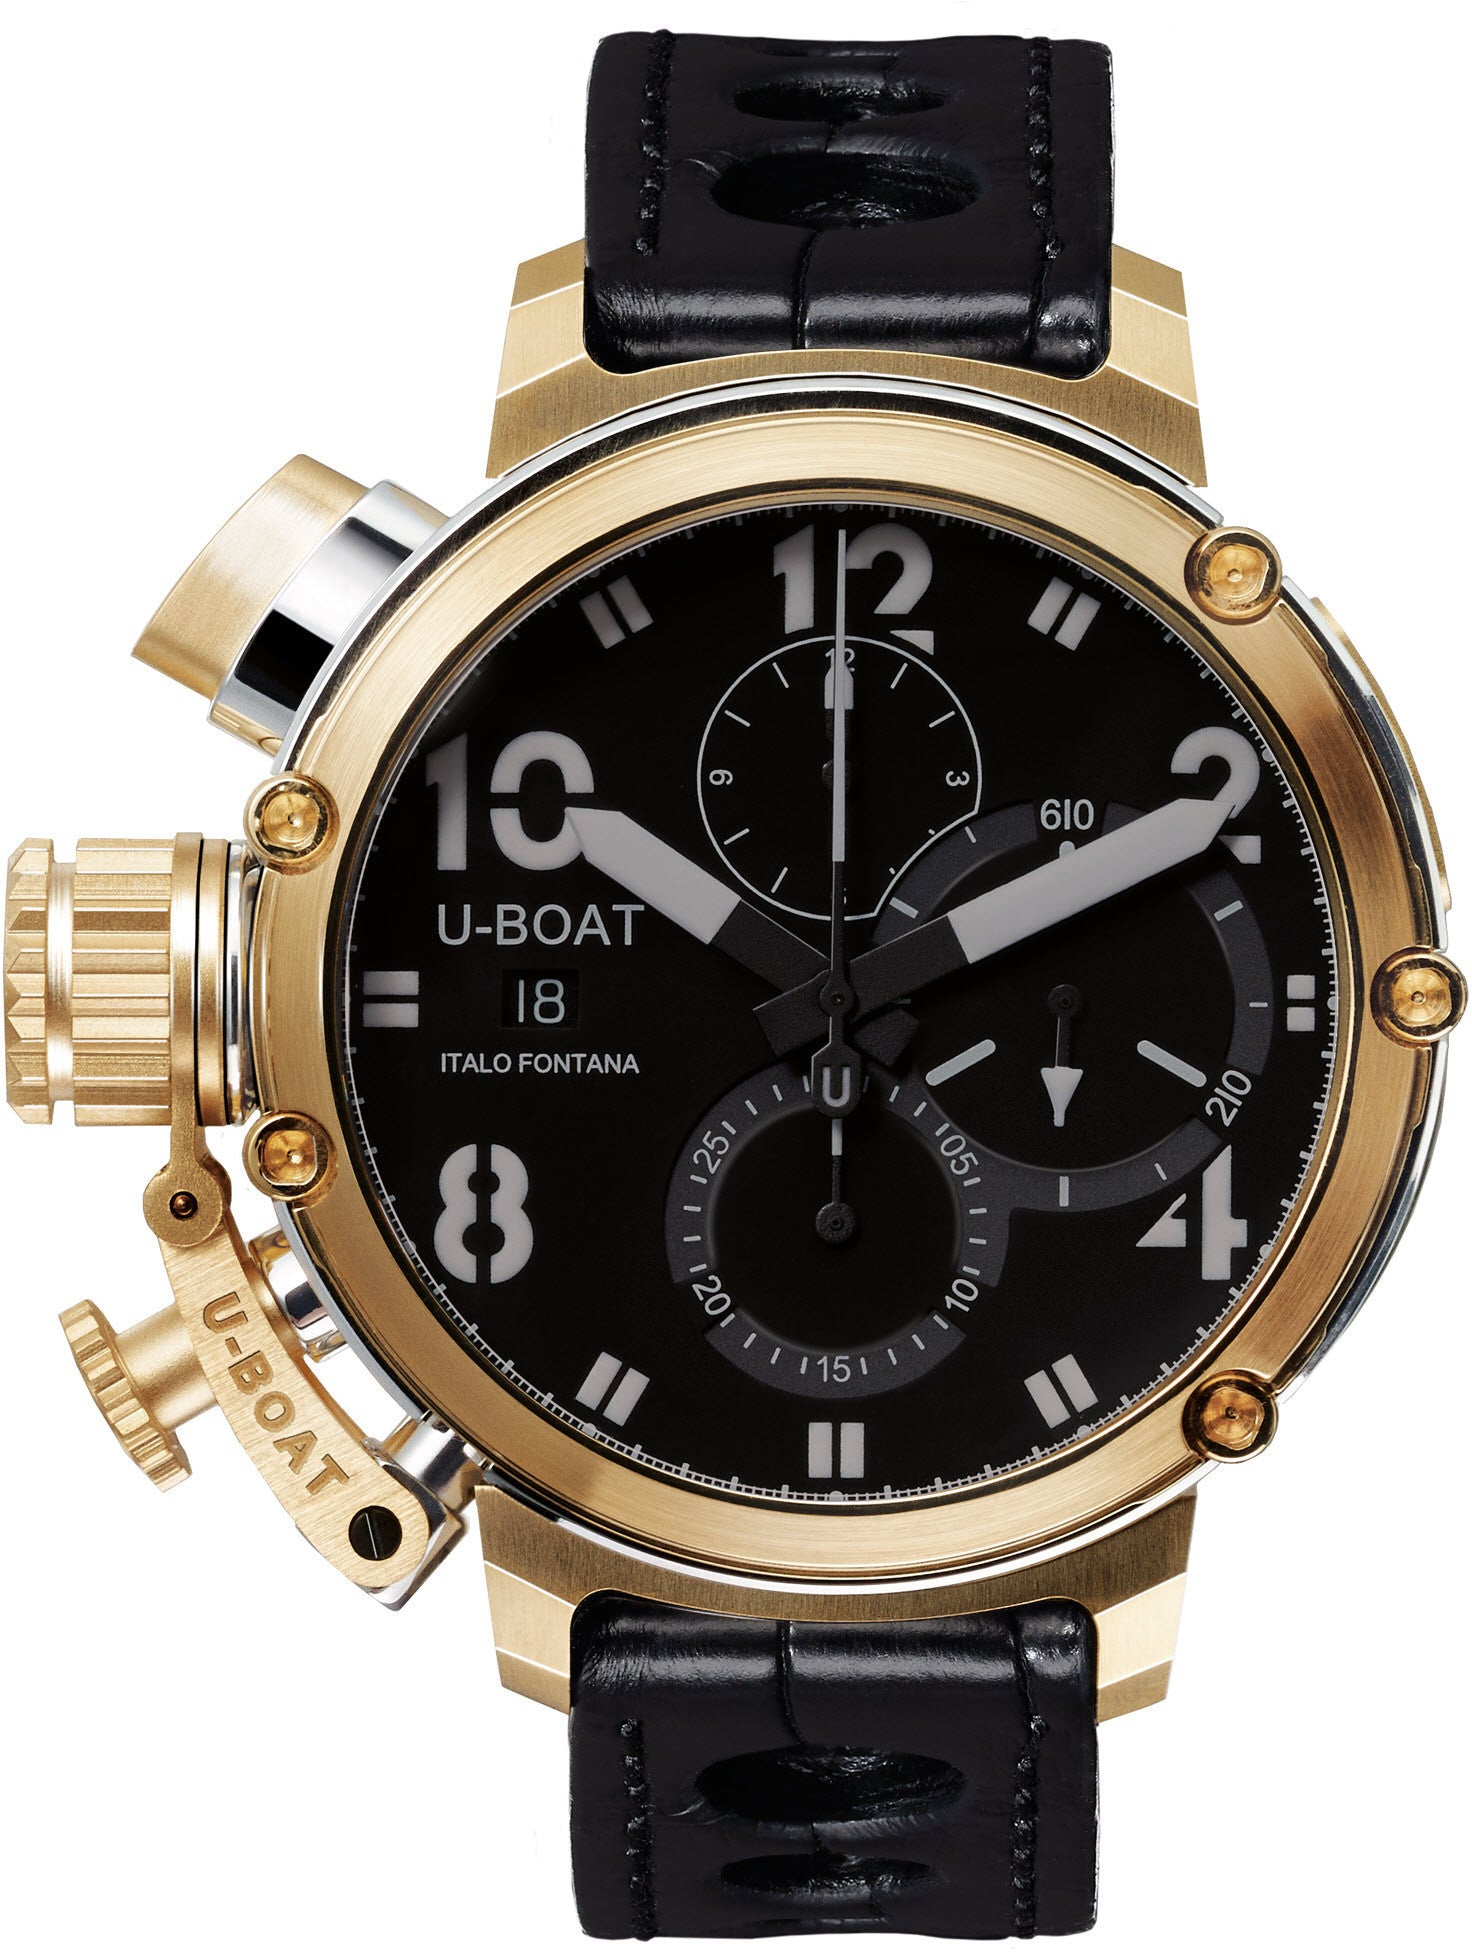 U-Boat Watch Chimera 46 Sideview 18ct Gold Limited Edition